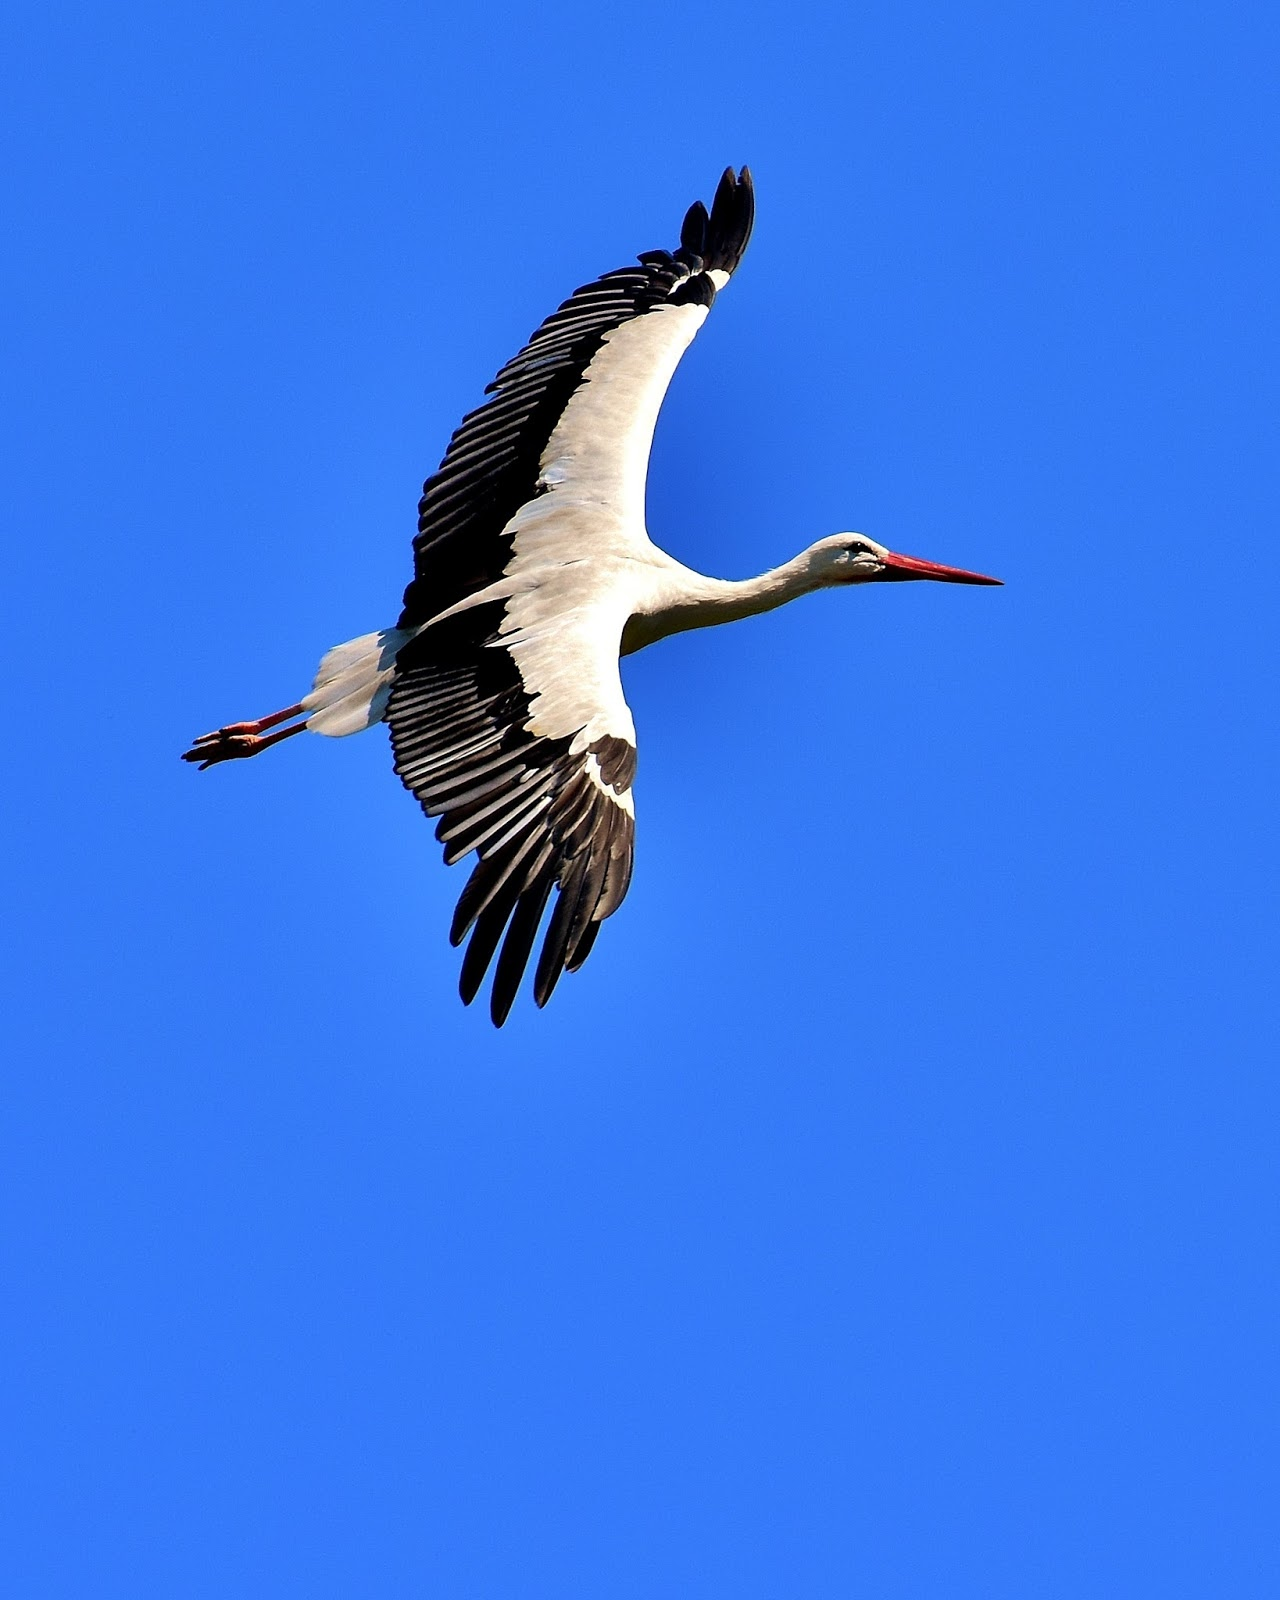 Picture of a stork in flight.